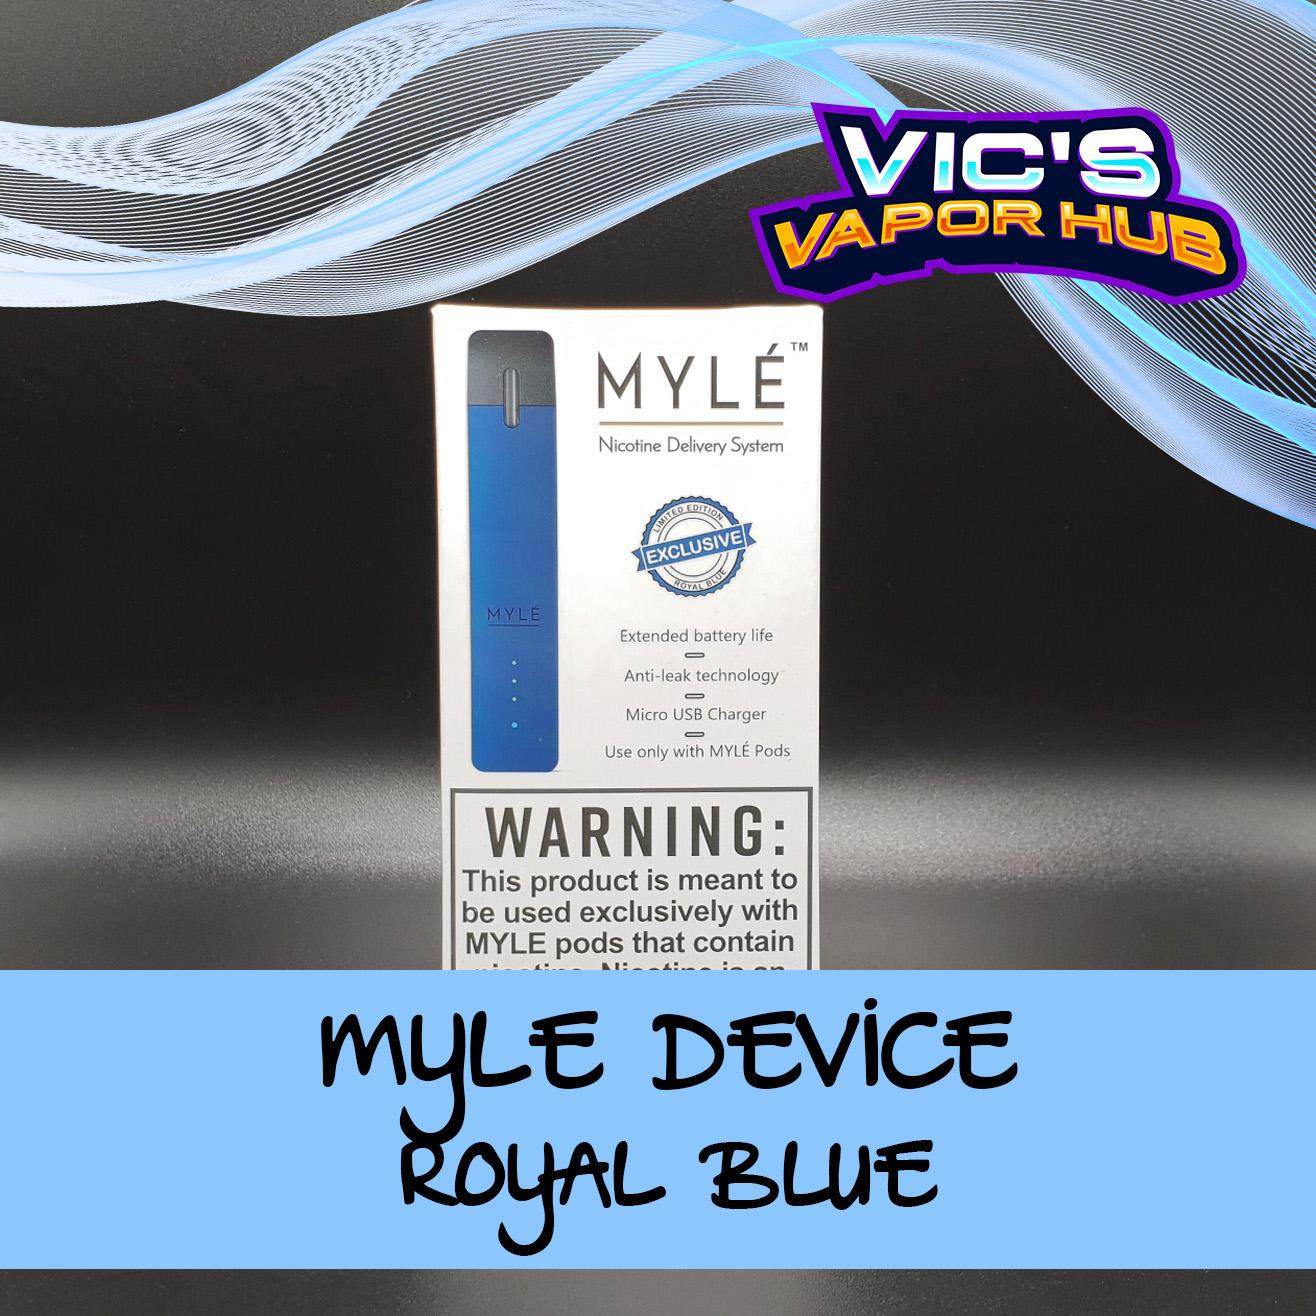 Myle Device (Nic Delivery System)